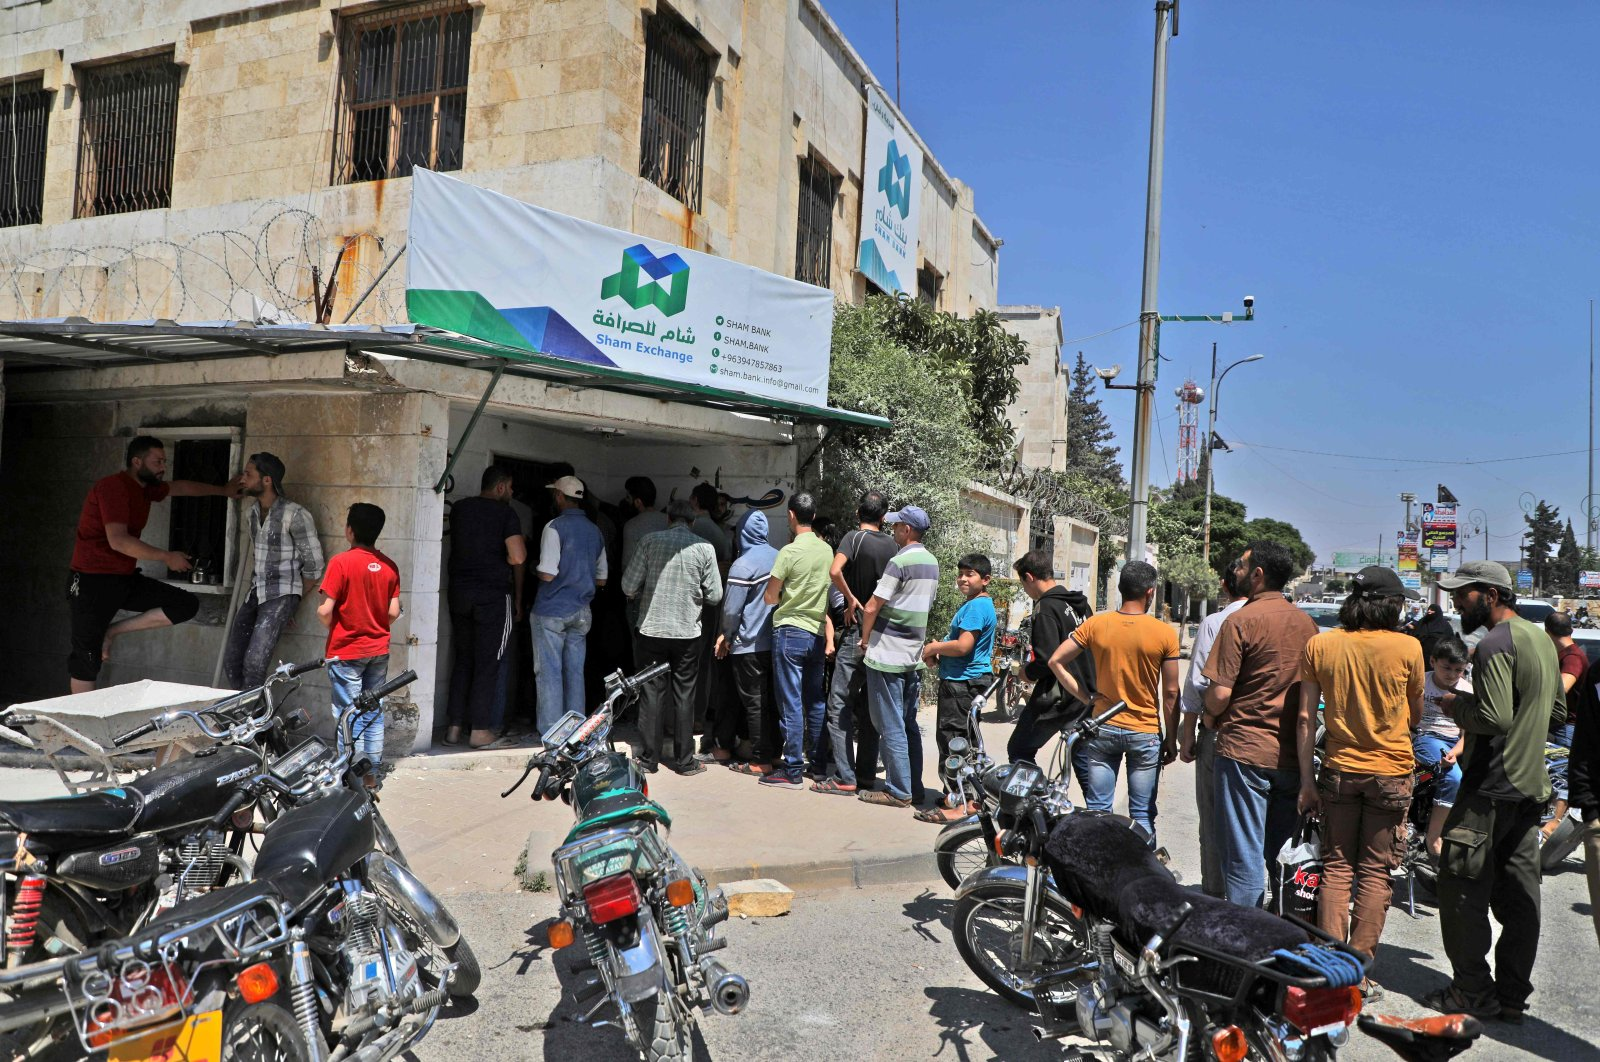 Syrians queue outside a currency exchange shop in Syria's northwestern city of Idlib, June 15, 2020. (AFP Photo)